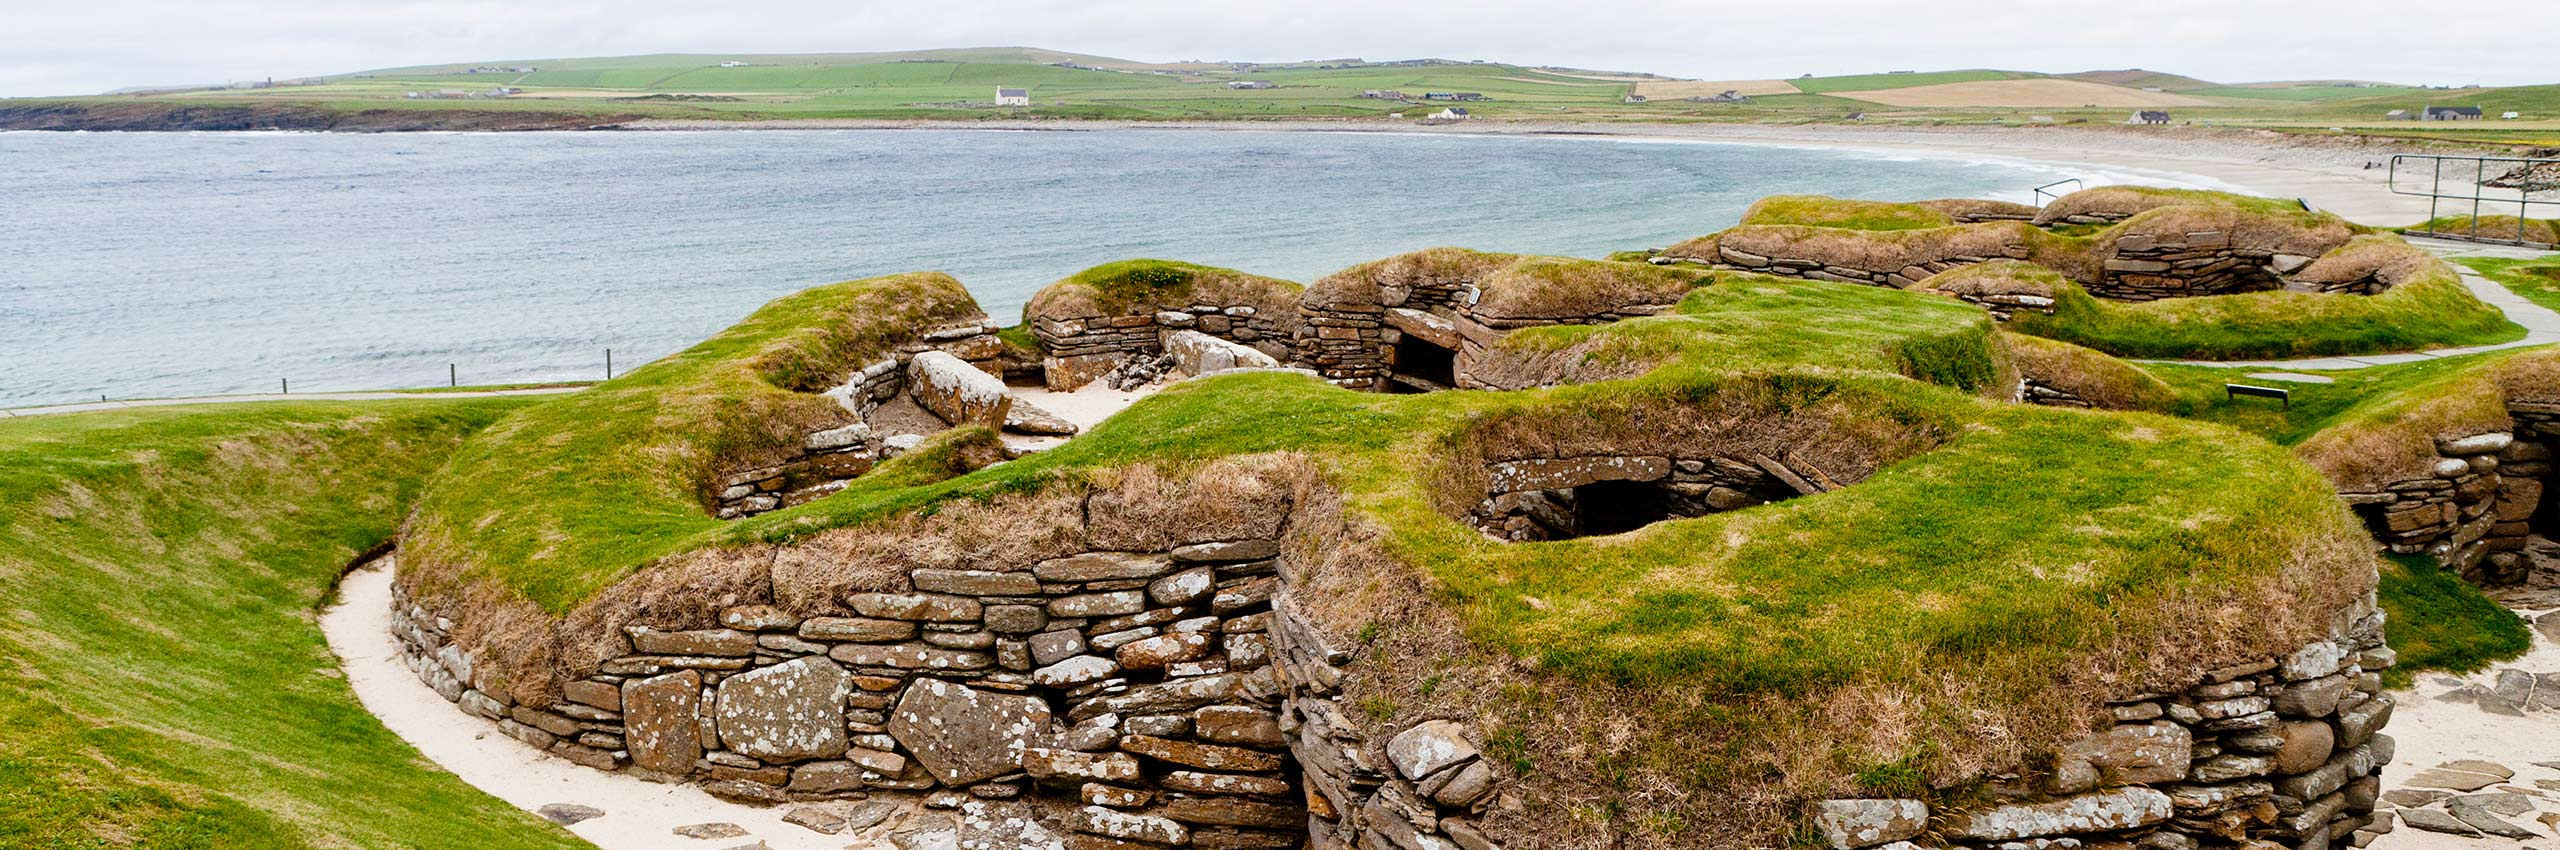 FCR-445439 | UK/Scotland, Orkney Islands | © Kav Dadfar/4Corners